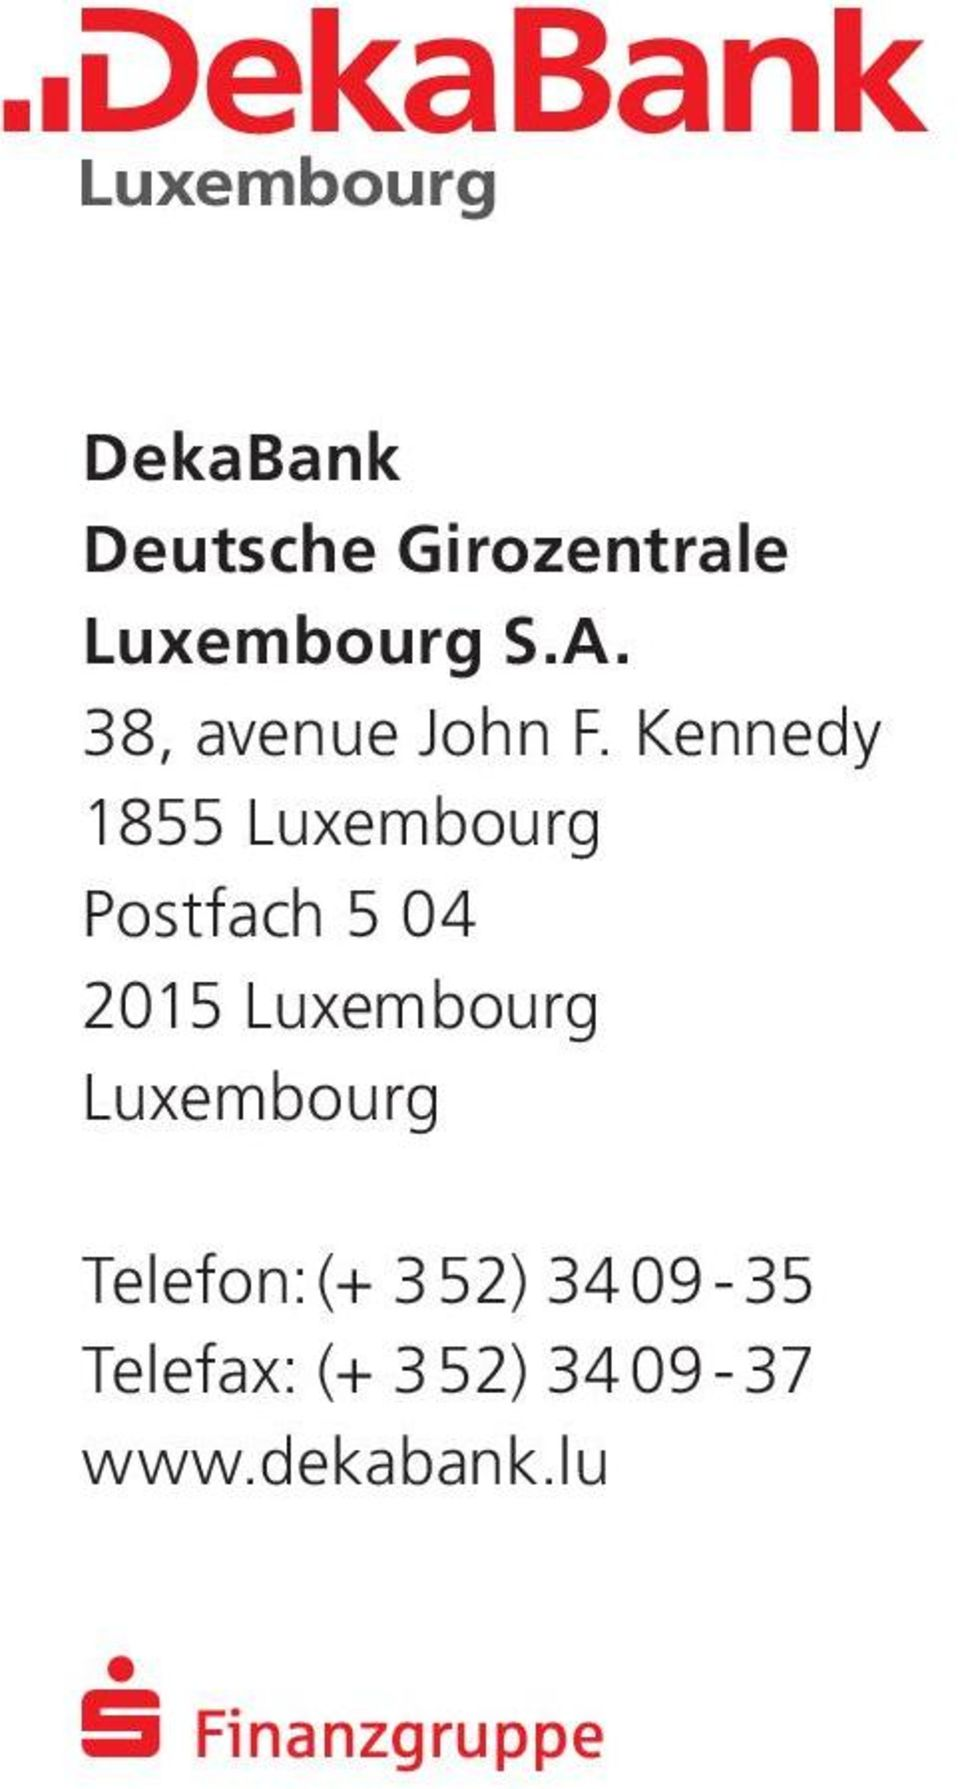 Kennedy 1855 Luxembourg Postfach 5 04 2015